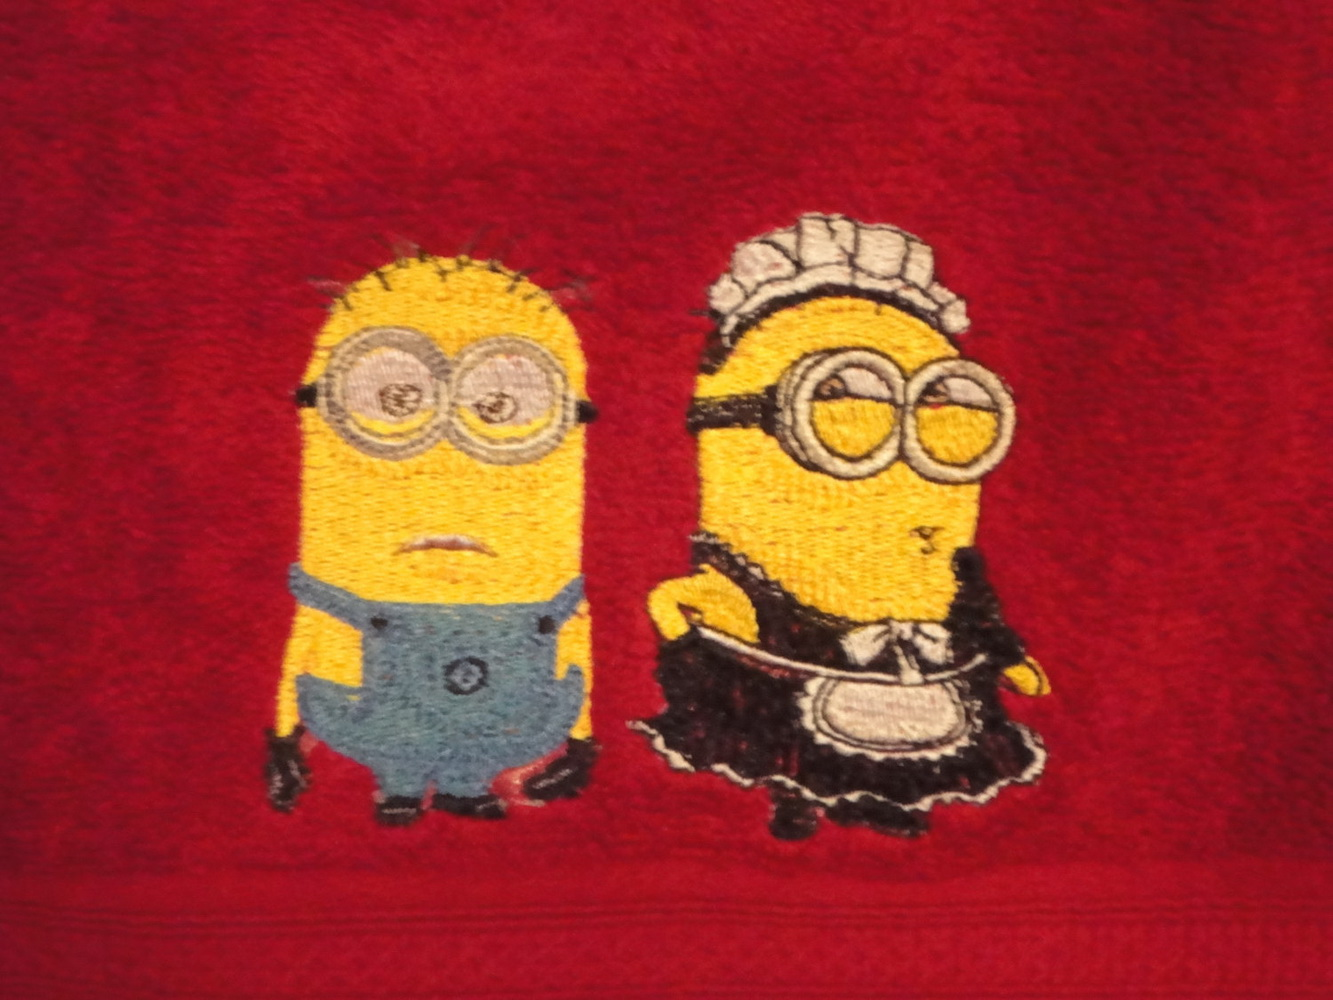 Minions embroidered on towels